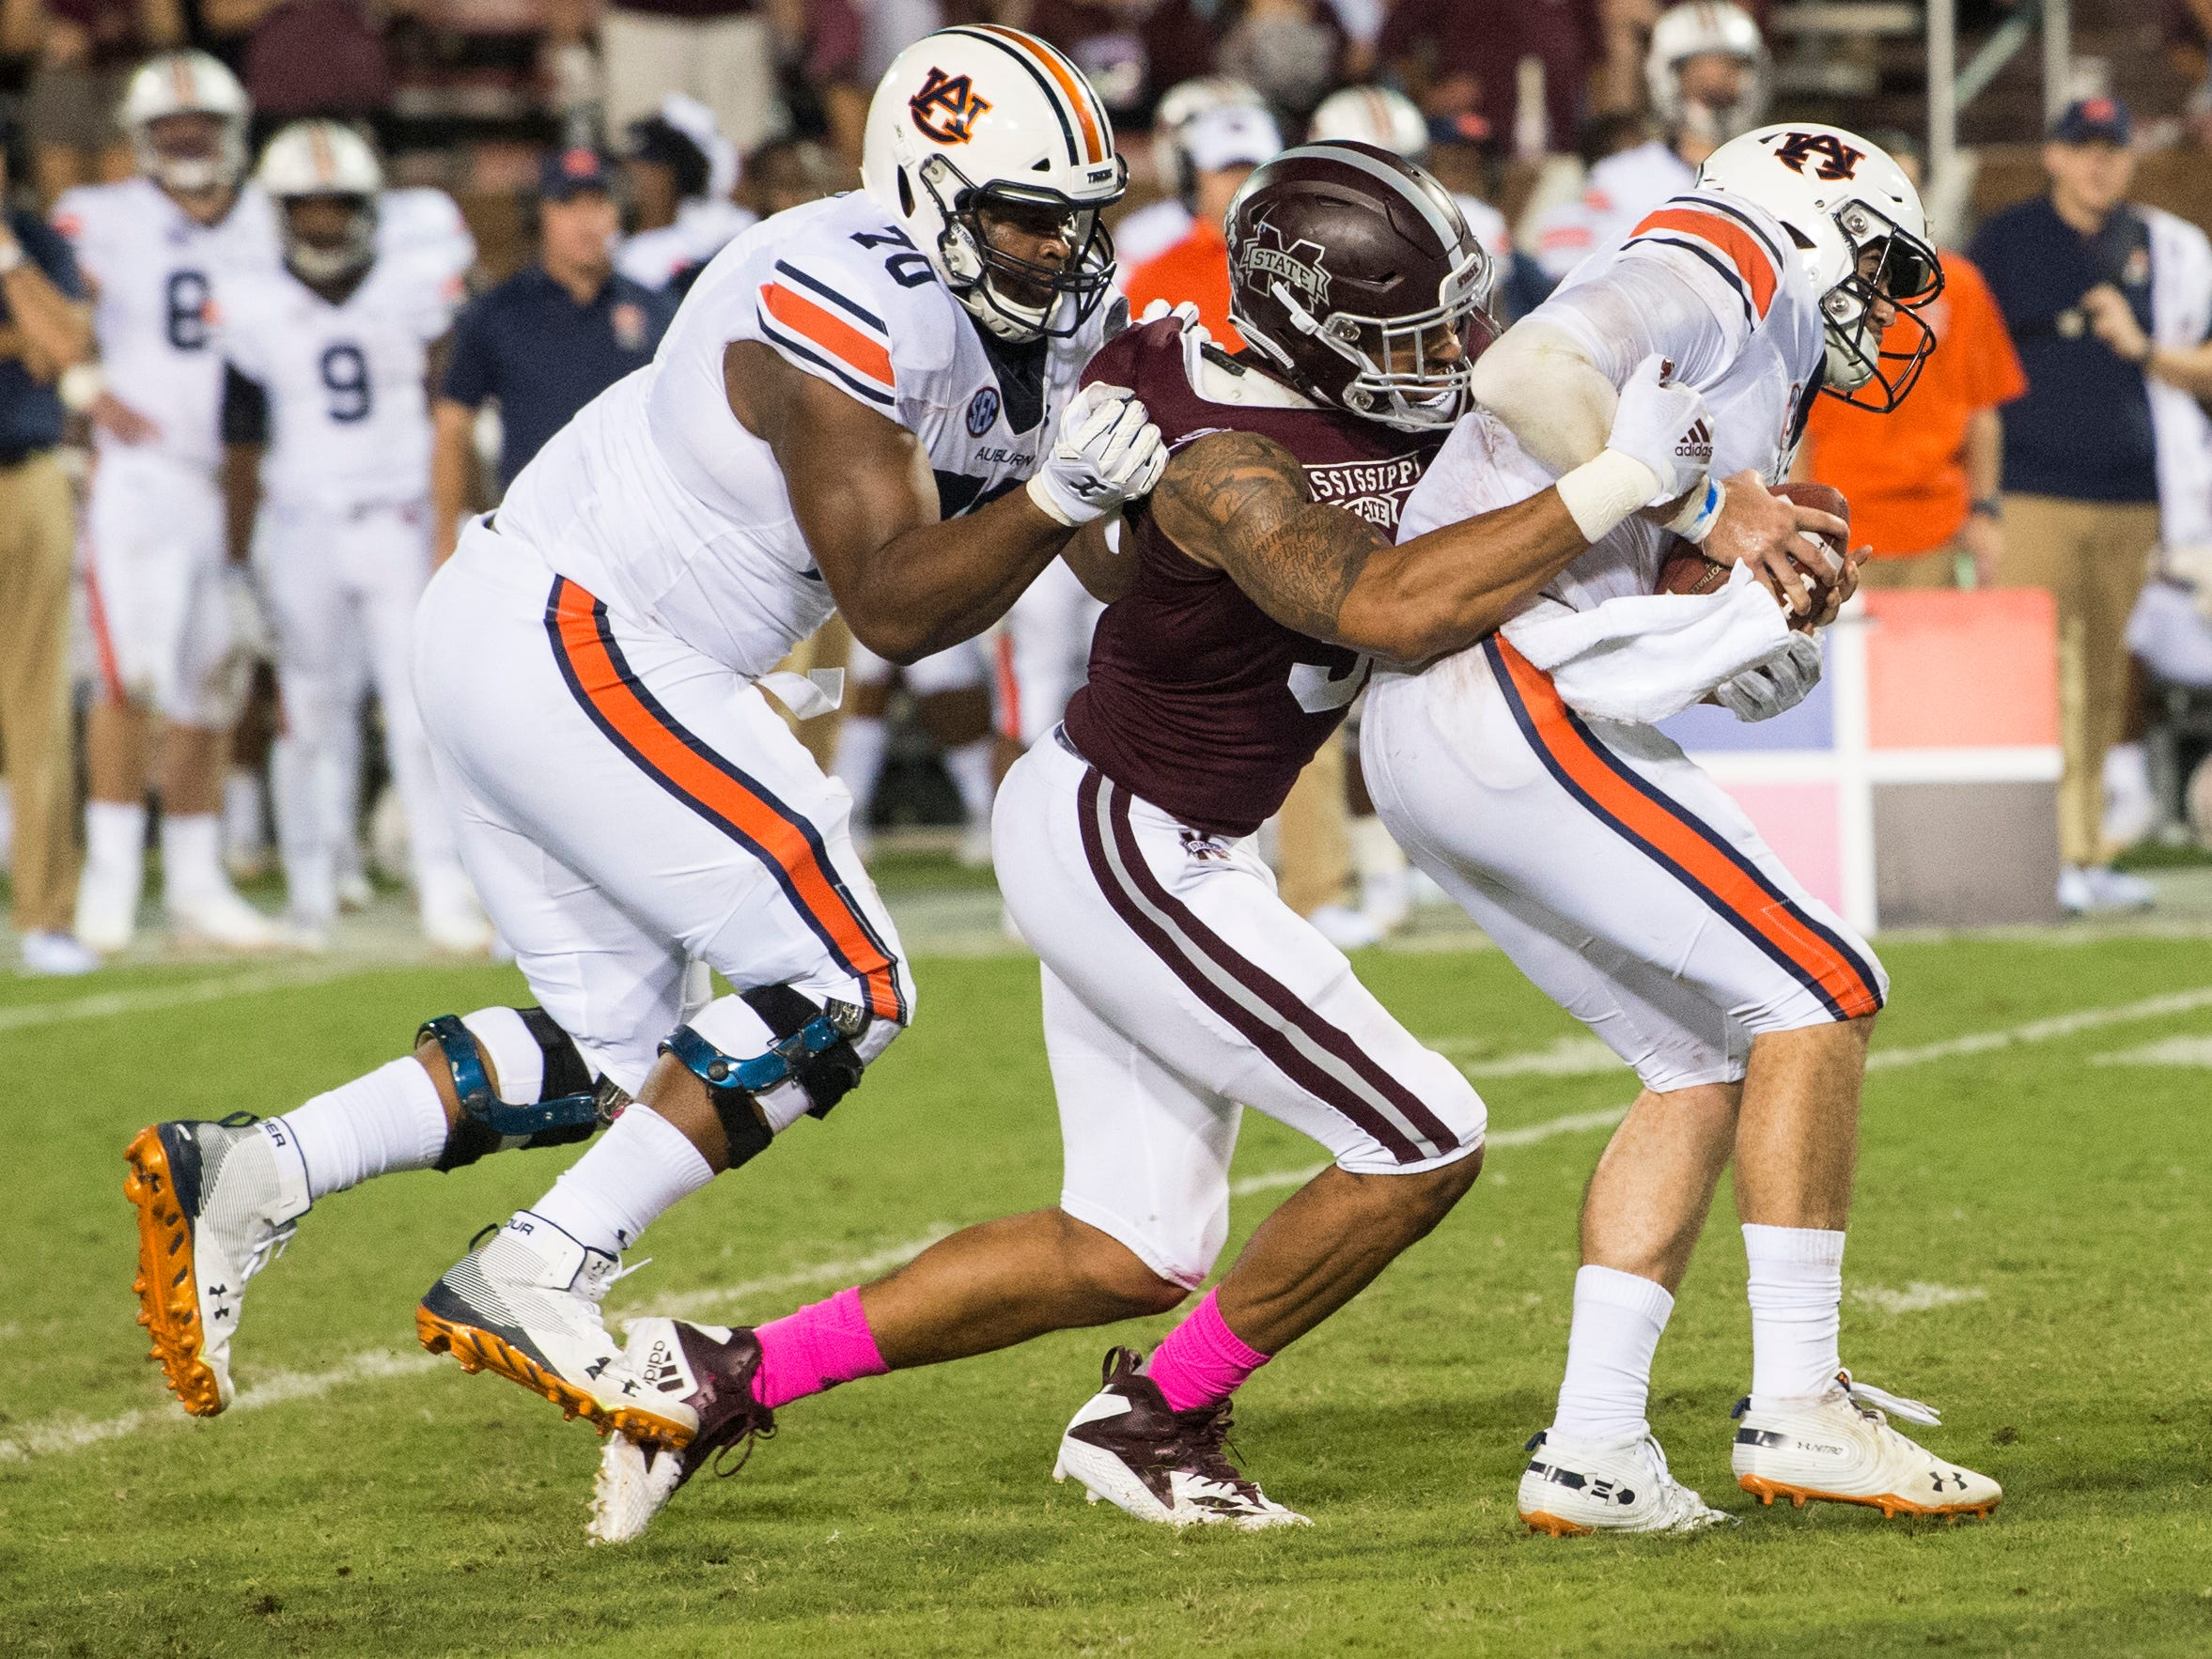 Auburn's Jarrett Stidham (8) is sacked by Mississippi State's Montez Sweat (9) at Davis Wade Stadium in Starkville, Miss., on Saturday, Oct. 6, 2018. Mississippi State defeated Auburn 23-9.